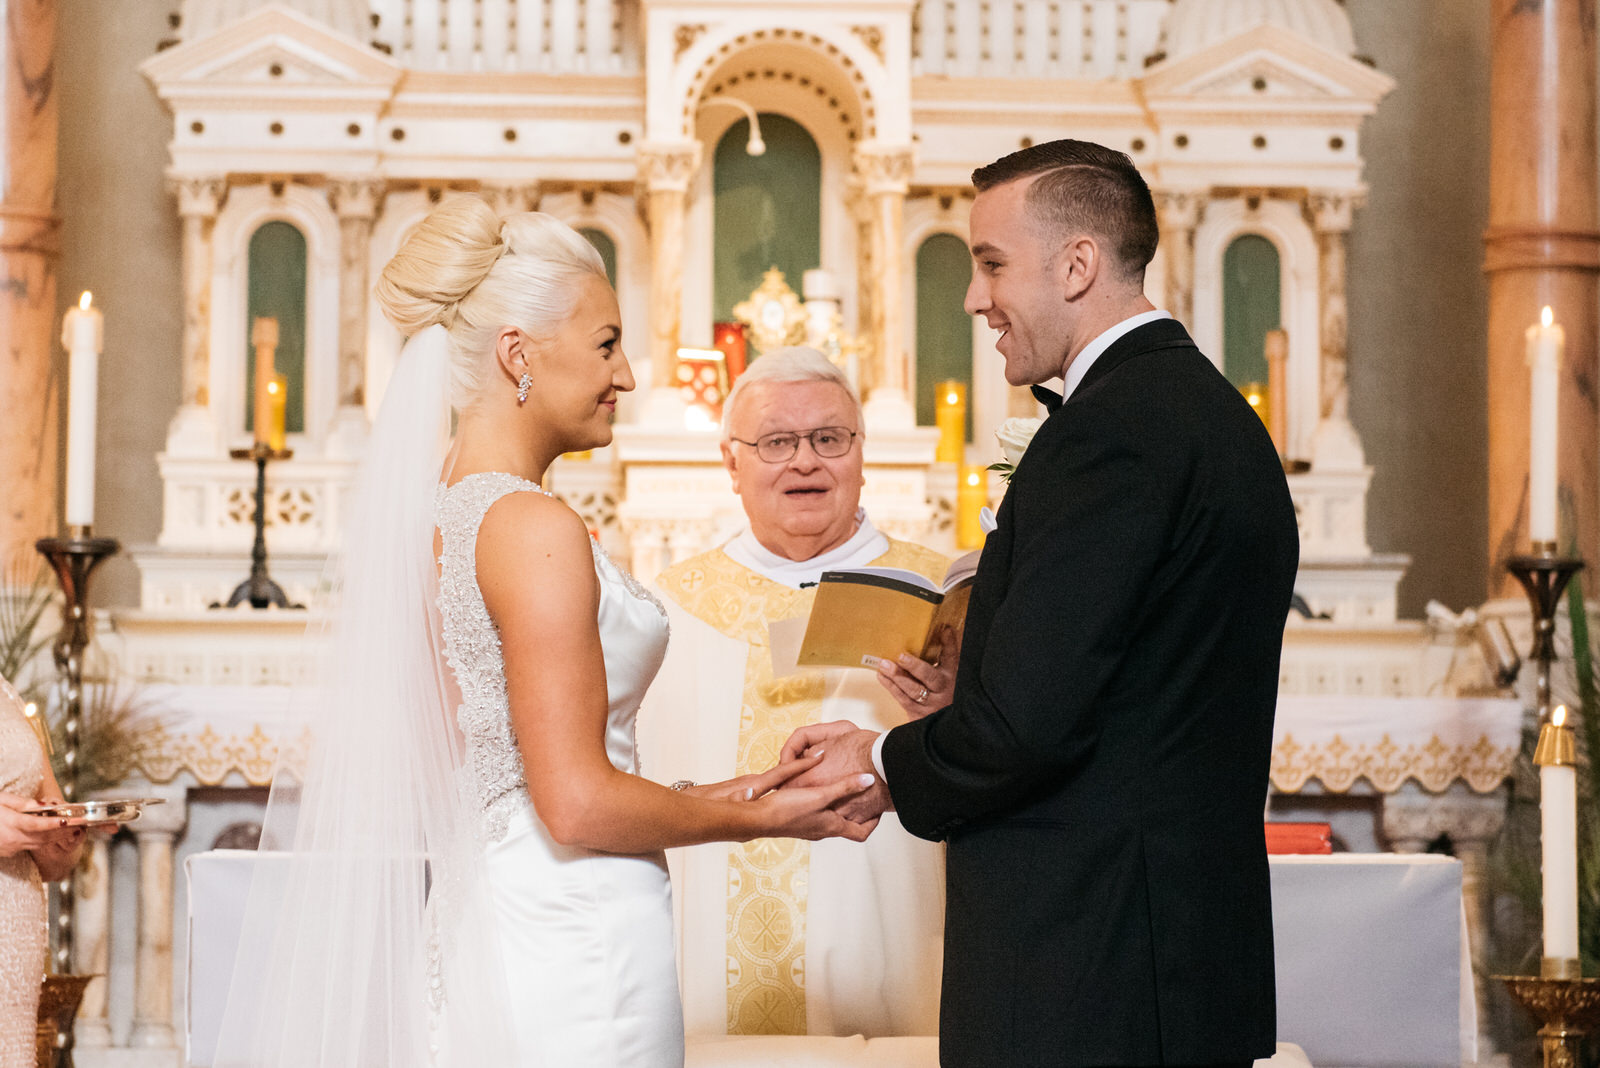 hilton_garden_inn_southpointe_pittsburgh_weddings_42.jpg